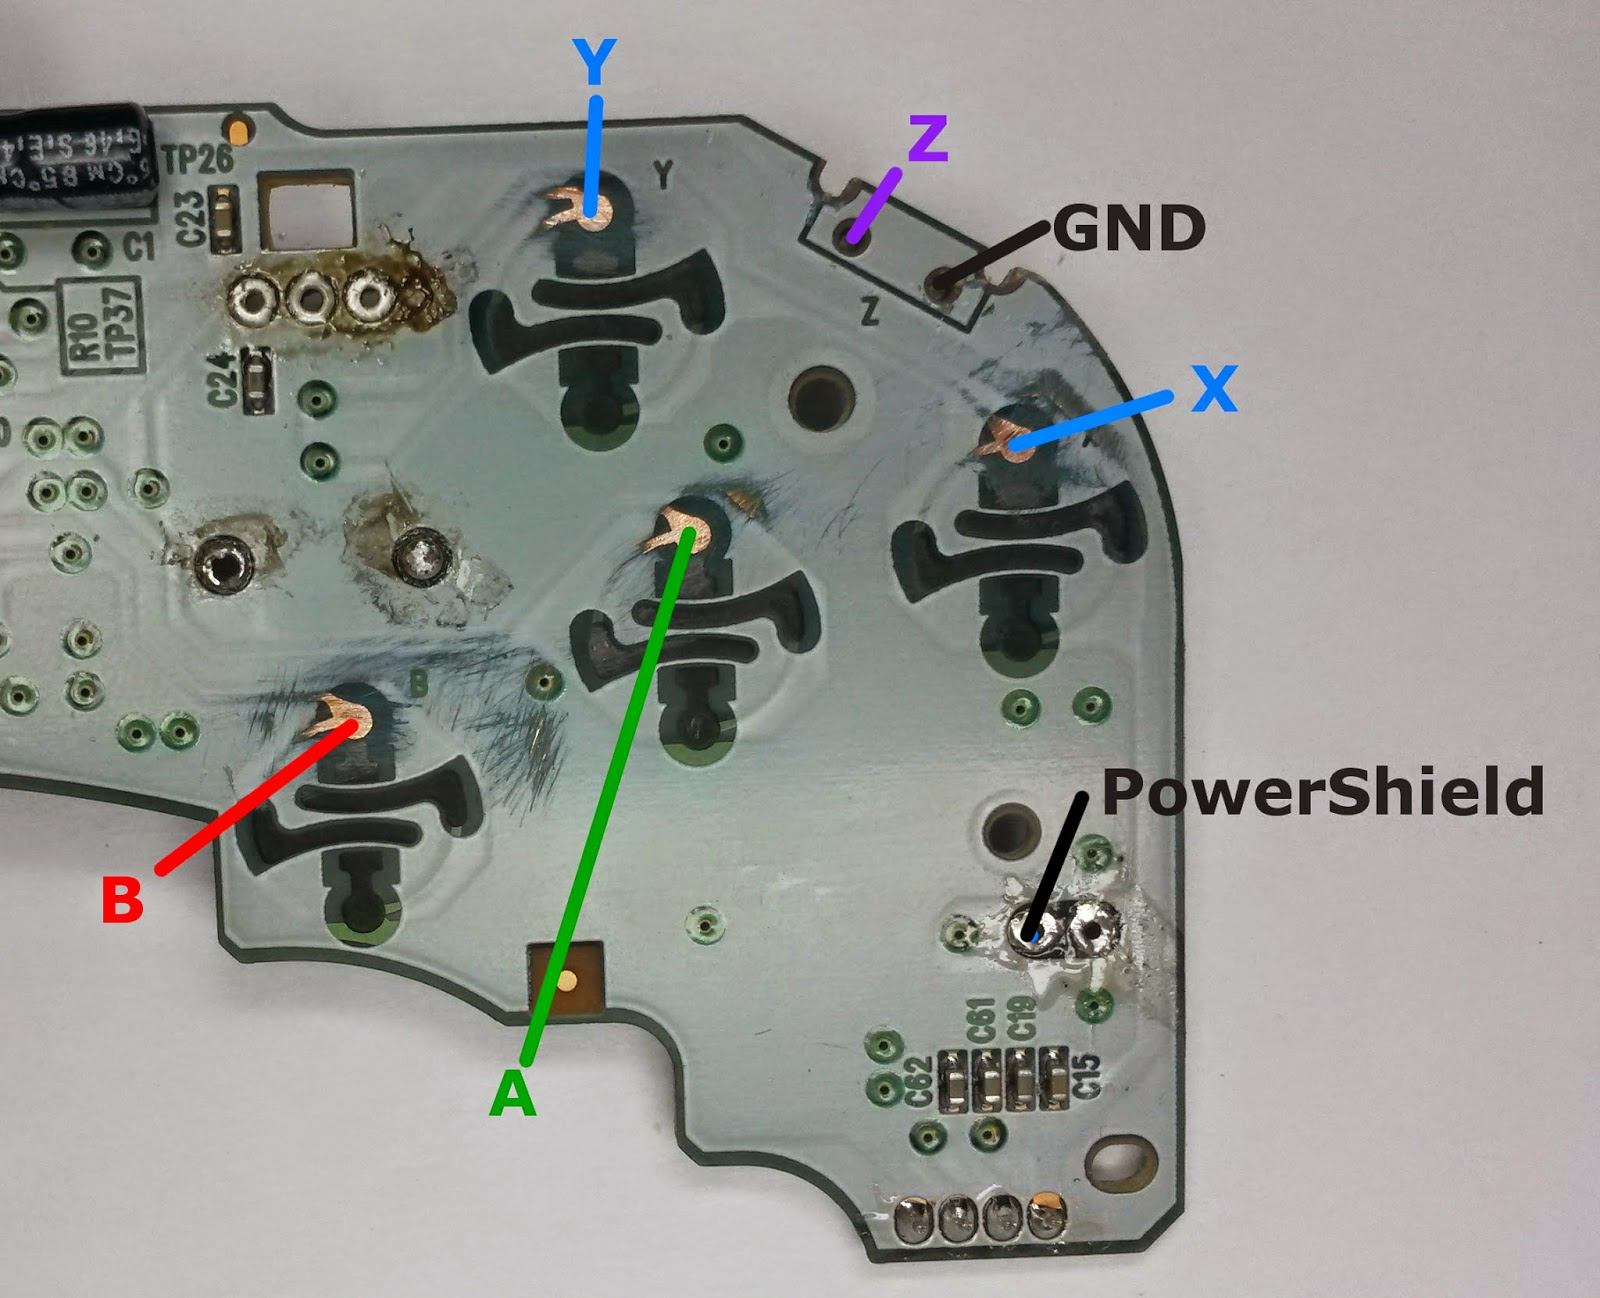 small resolution of gamecube controller wiring diagram right stick simple wiring schema gamecube roms gamecube controller wiring diagram right stick